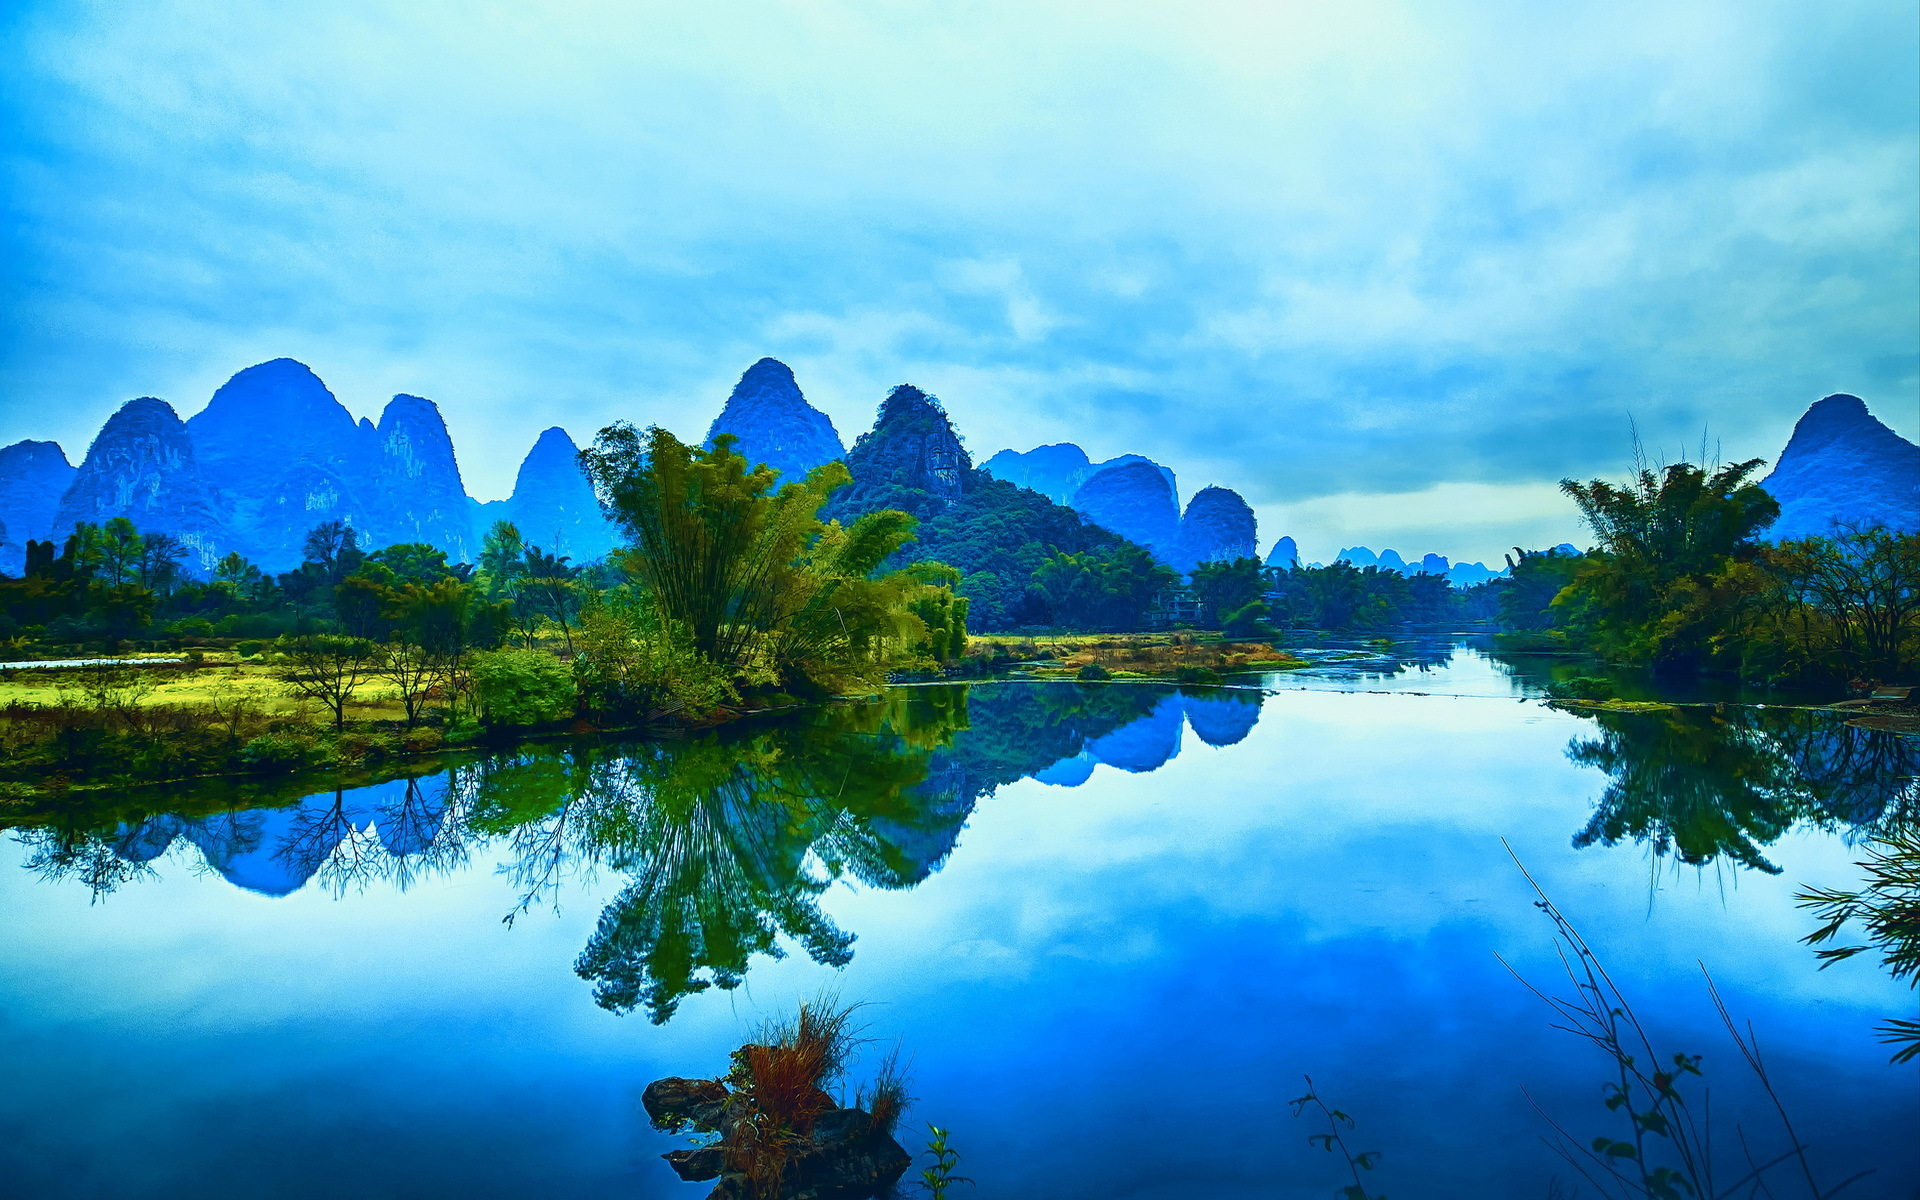 quality china wallpapers countries - photo #12